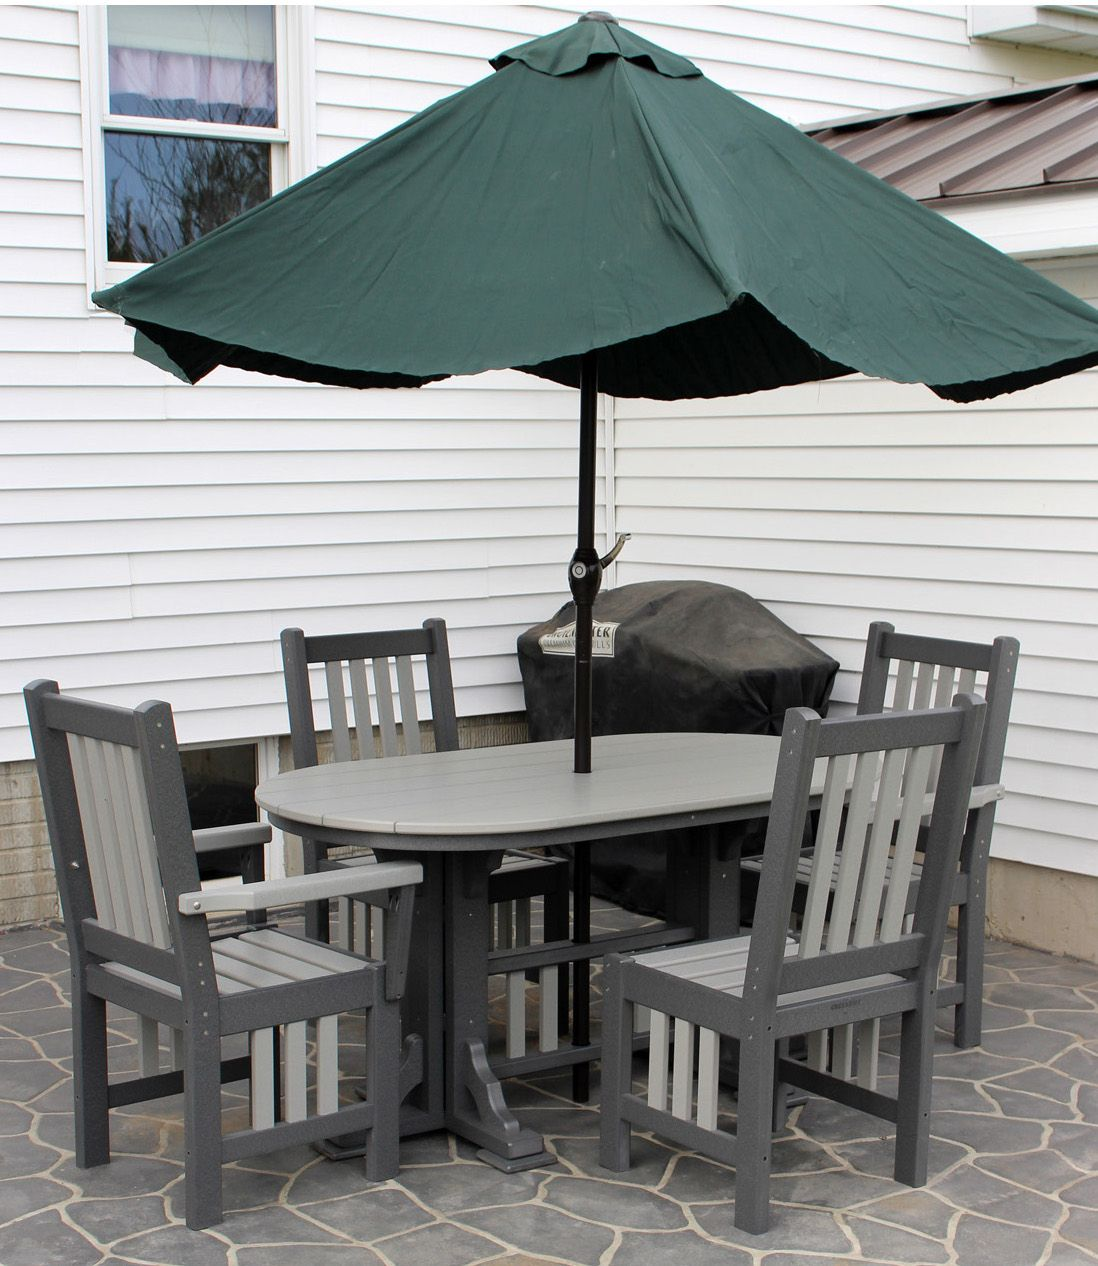 Polywood Mission Oval Table In 2020 Oval Table Patio Modern